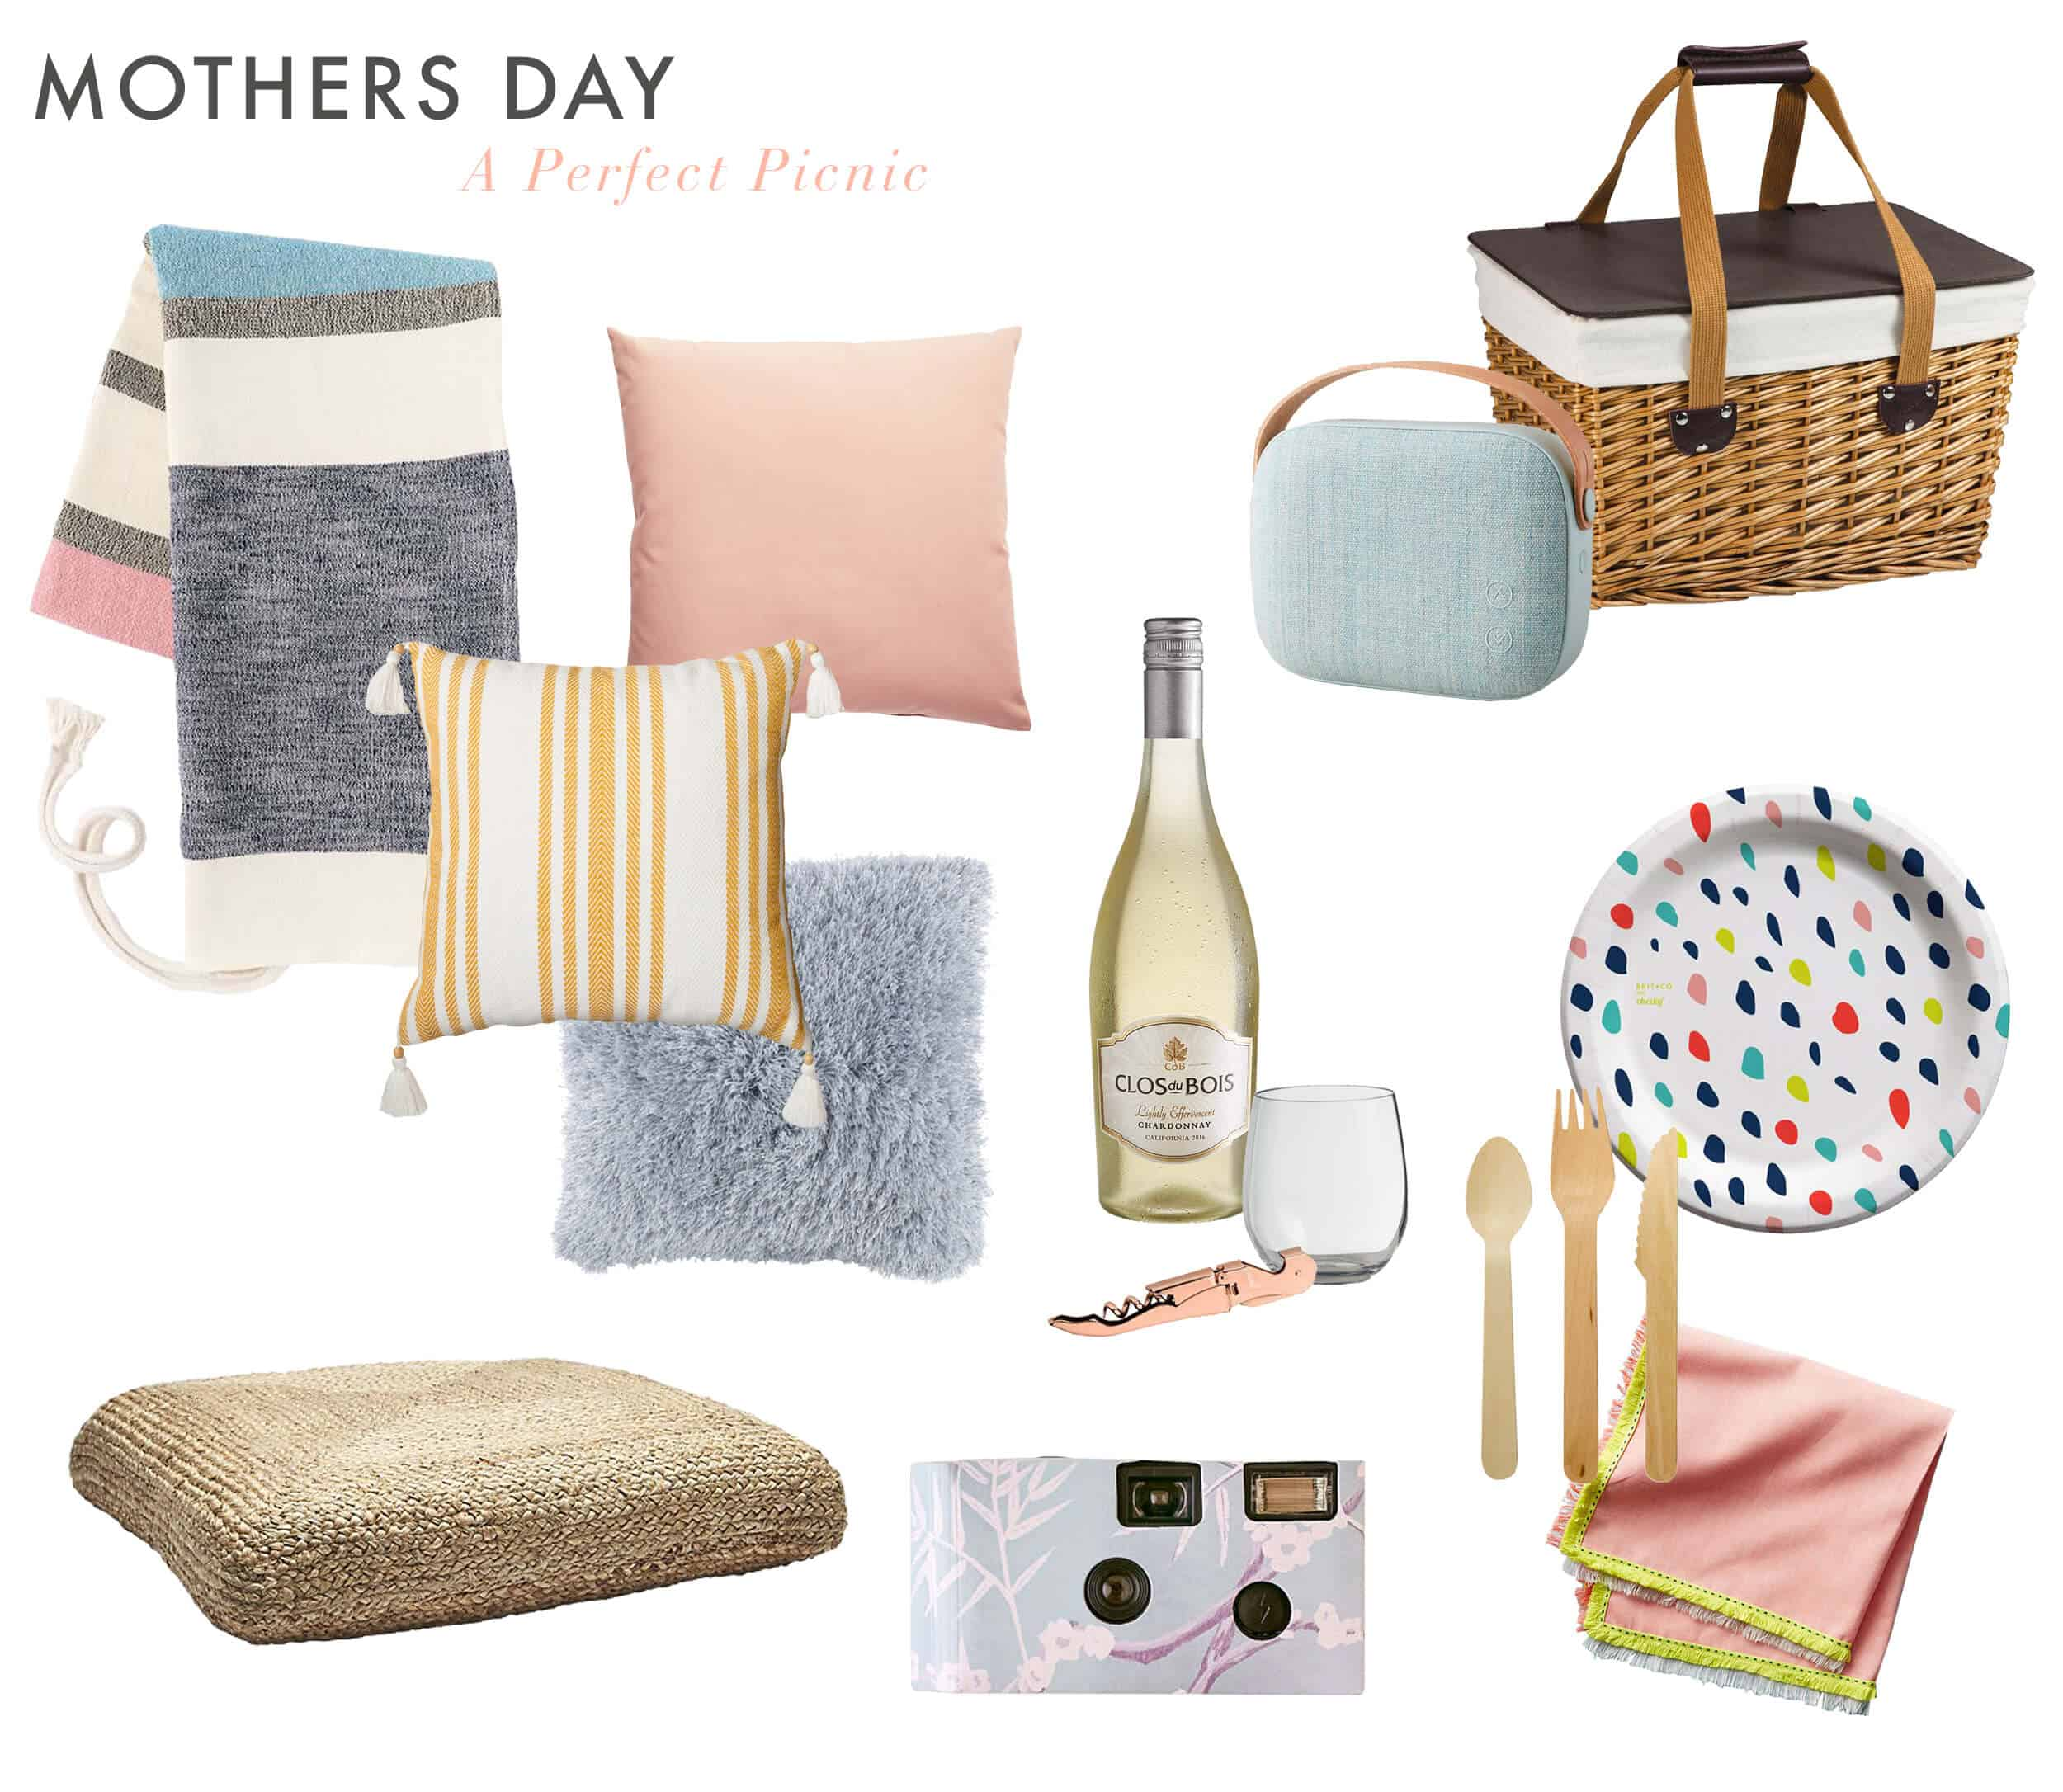 Emily-Henderson_Mothers-Day-Ideas_Picnic_Get-the-Look_Option-21